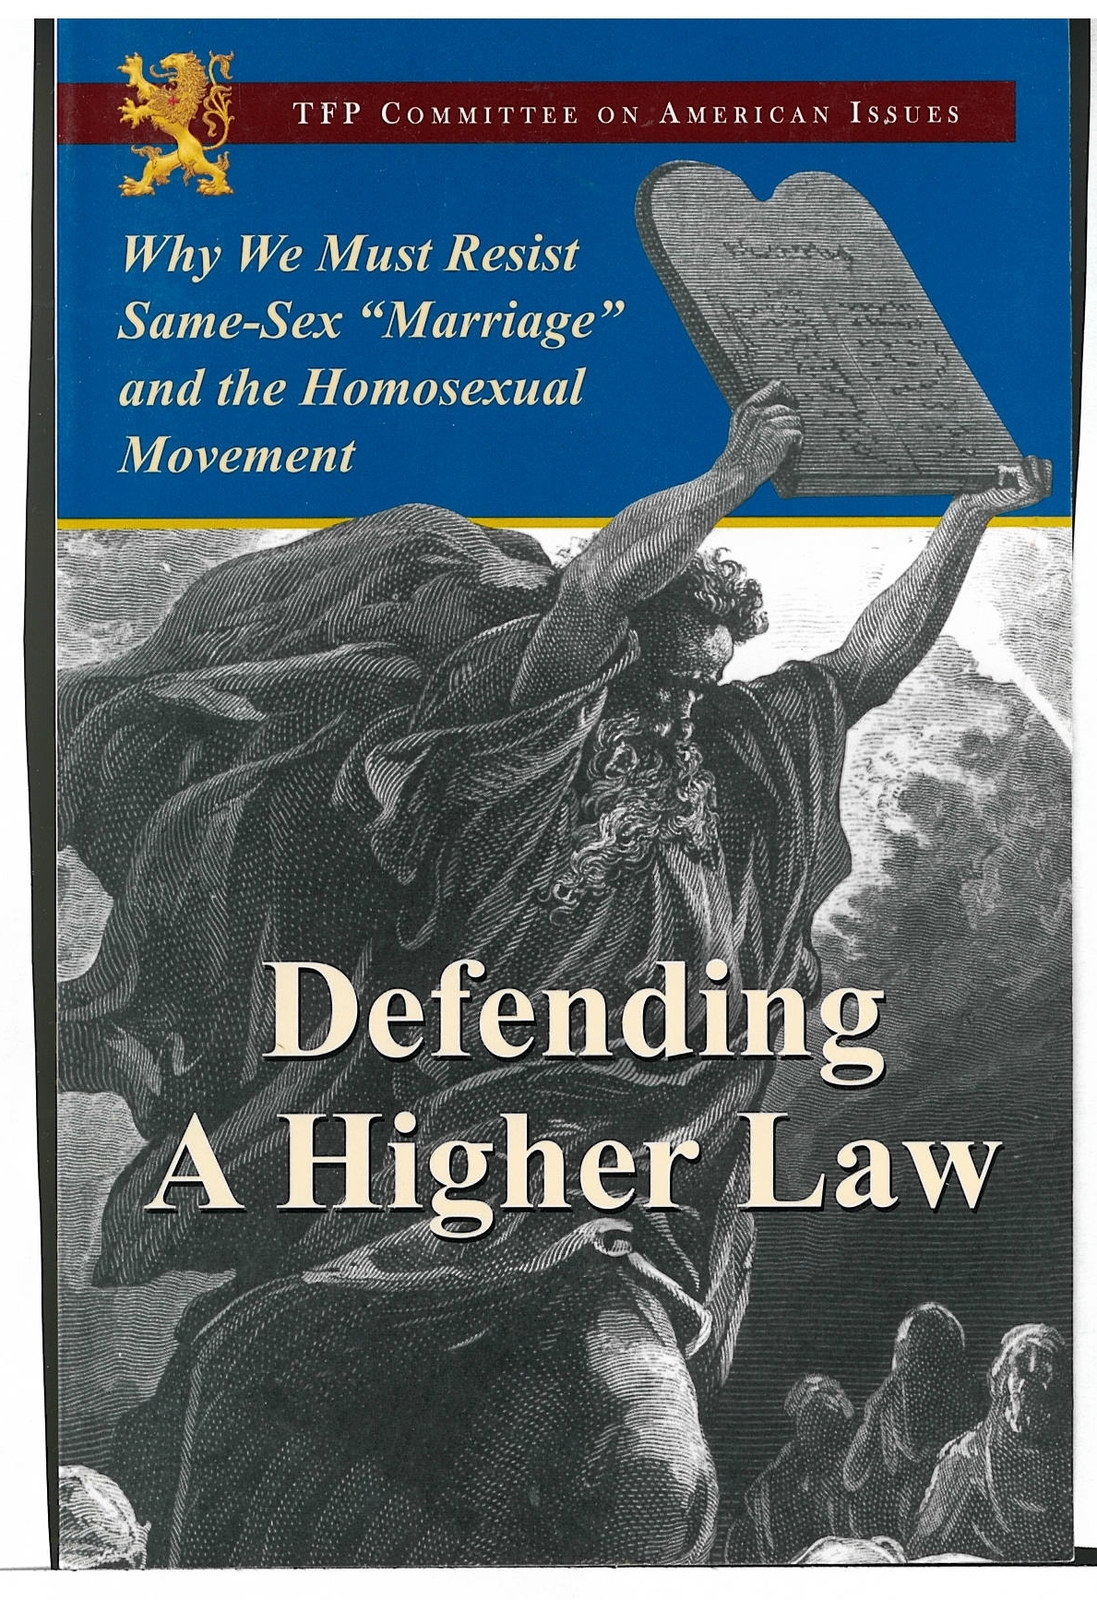 Defending a higher law 001